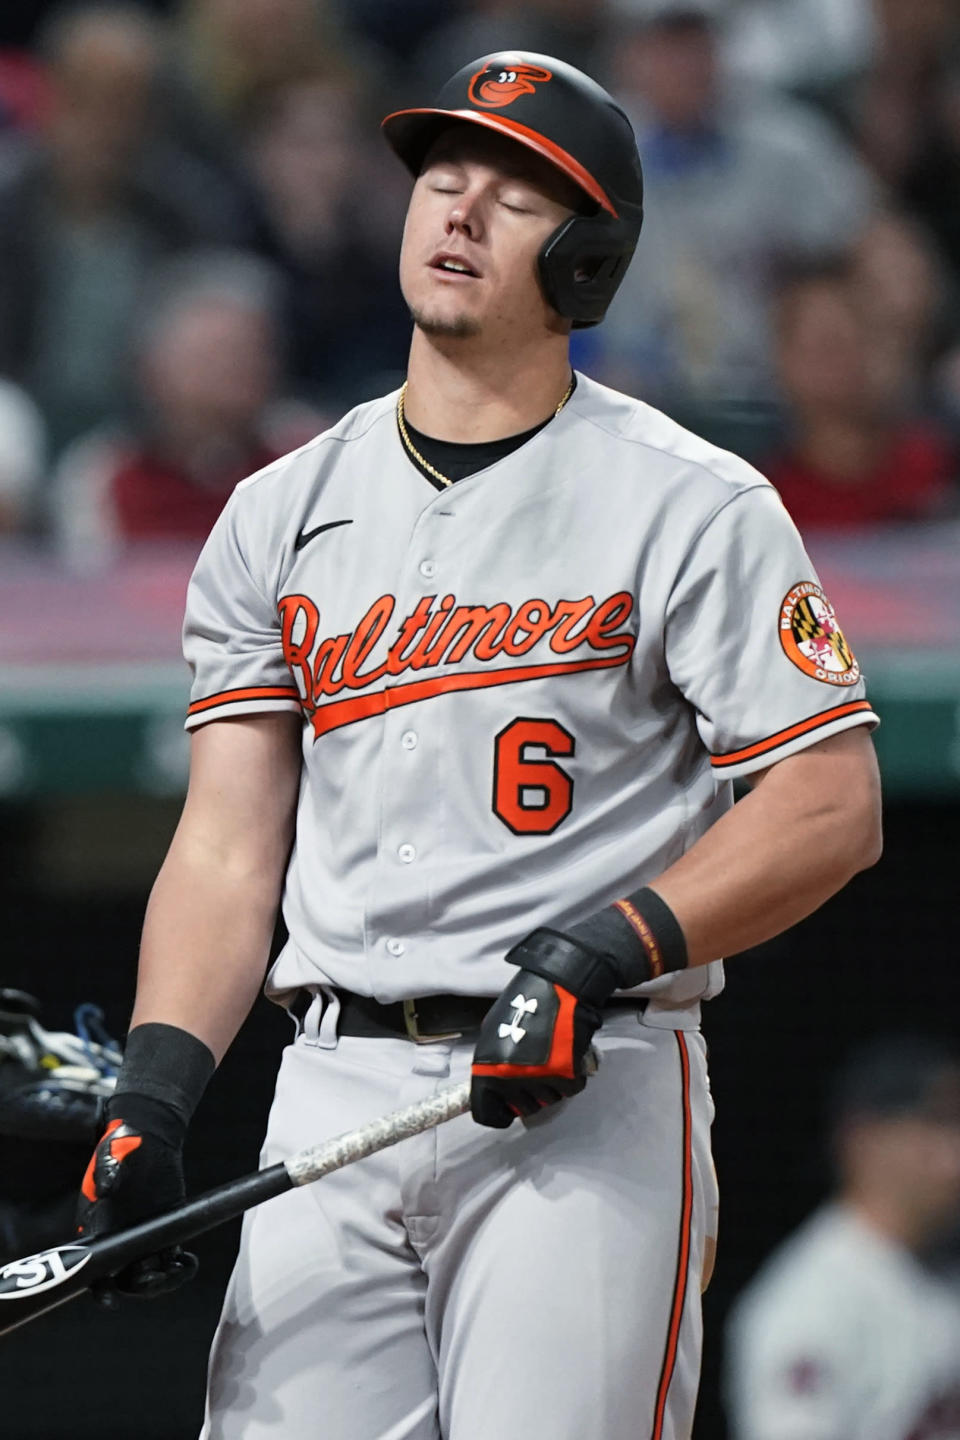 Baltimore Orioles' Ryan Mountcastle reacts after striking out during the ninth inning of the team's baseball game against the Cleveland Indians, Wednesday, June 16, 2021, in Cleveland. The Indians won 8-7. (AP Photo/Tony Dejak)